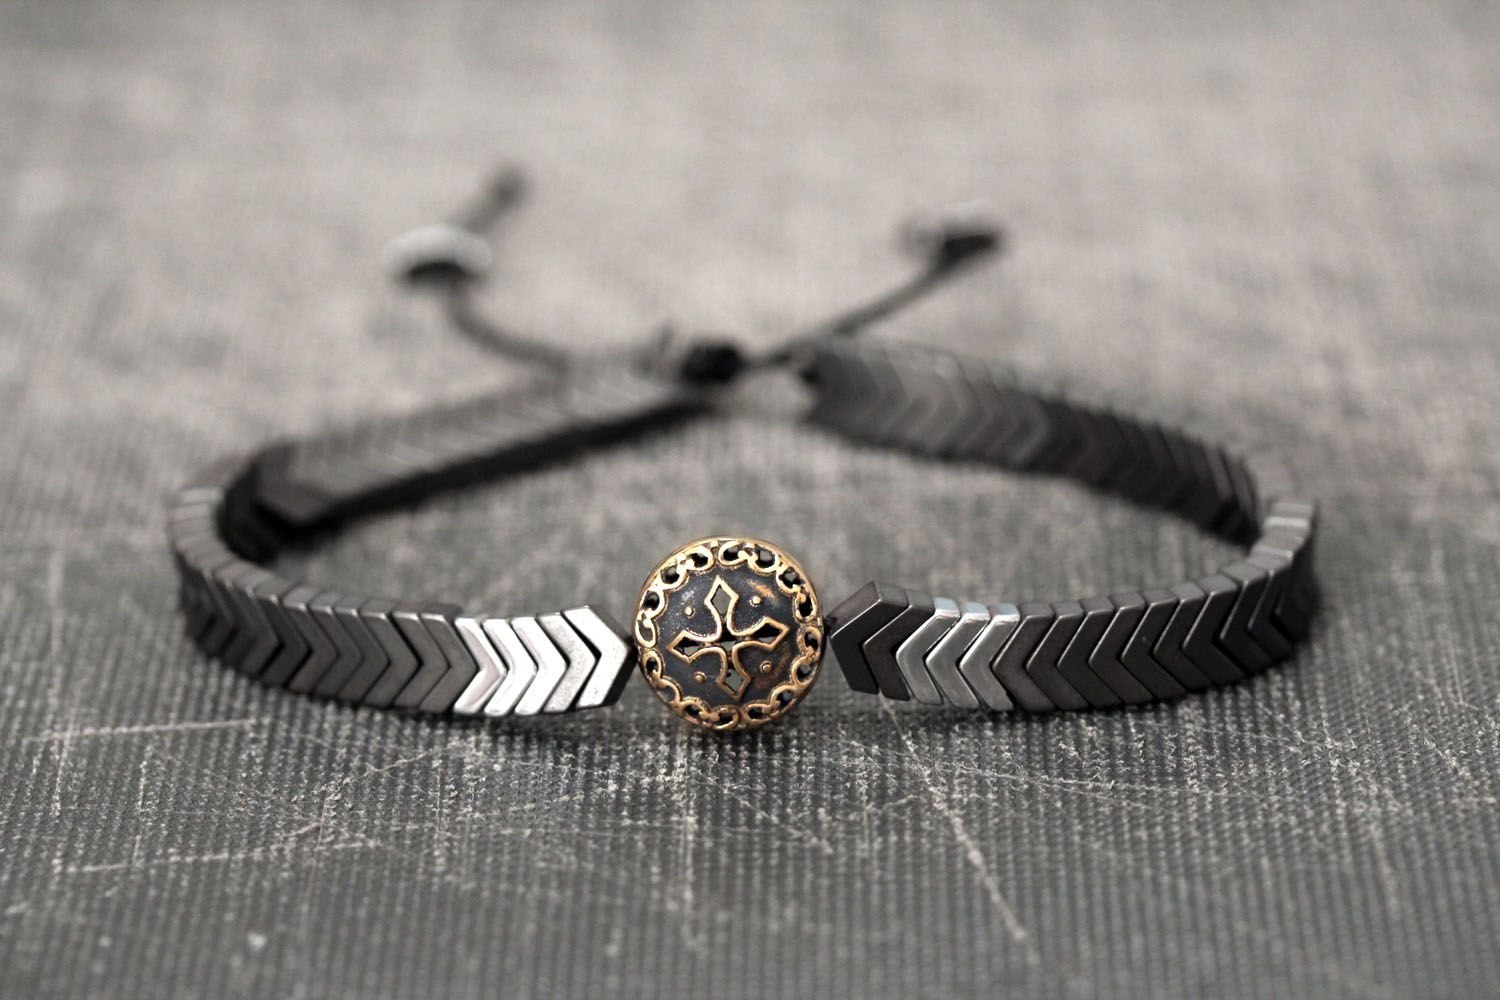 silver wide sterling men products quality bracelet jewelry high braided cuff masculine feminine vy elegant